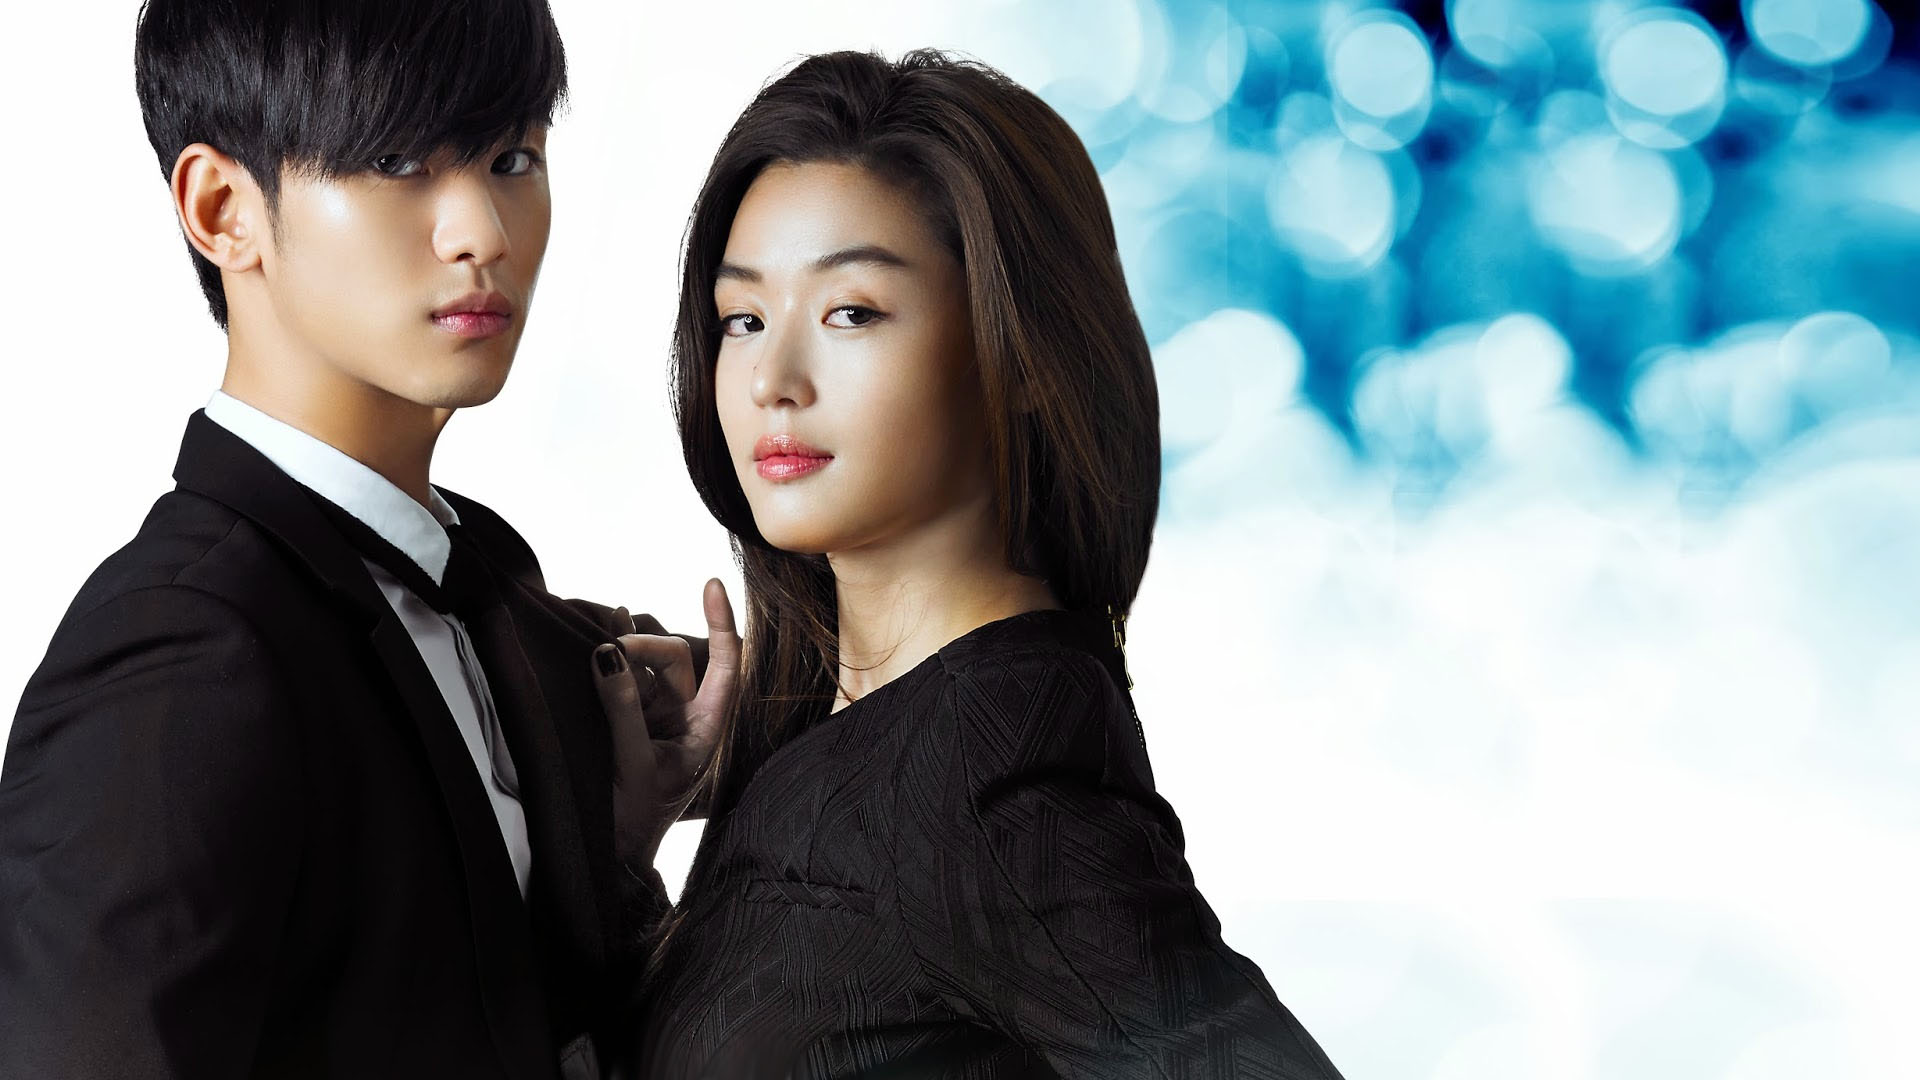 http://images6.fanpop.com/image/photos/36300000/Korean-Dramas-image-korean-dramas-36344313-1920-1080.jpg